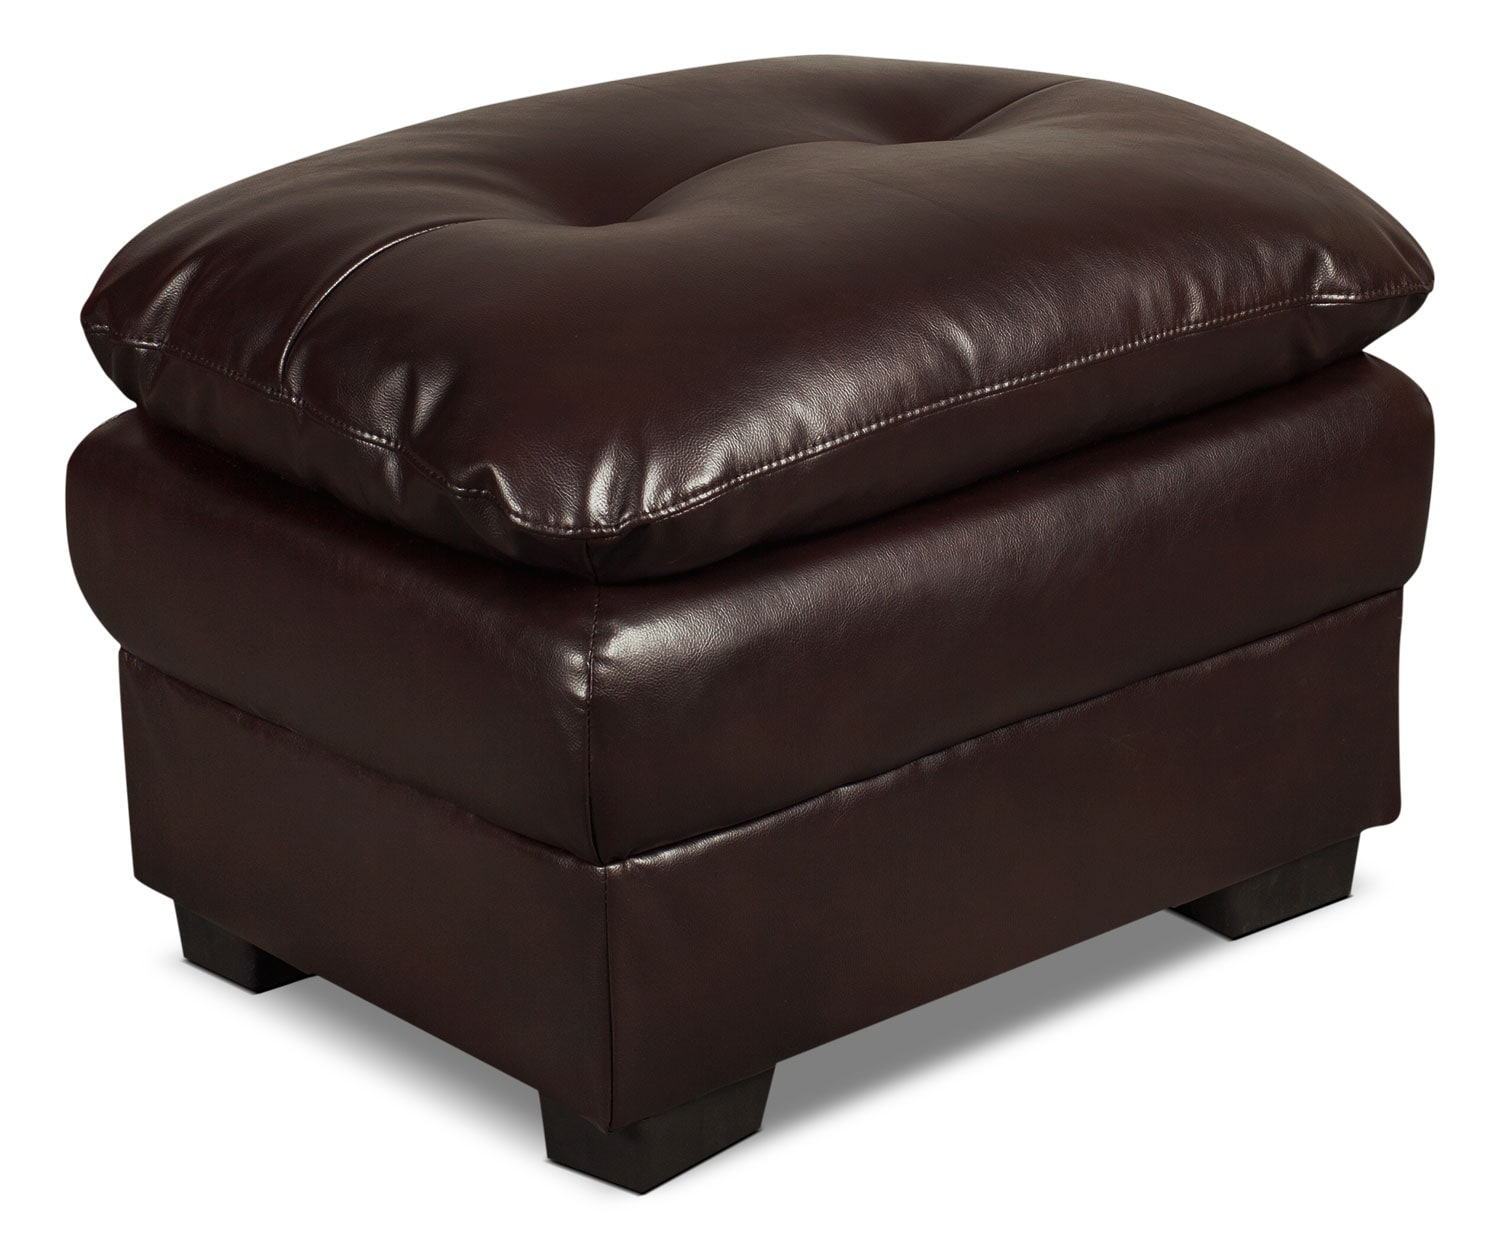 Bryon Leather-Look Fabric Ottoman – Brown